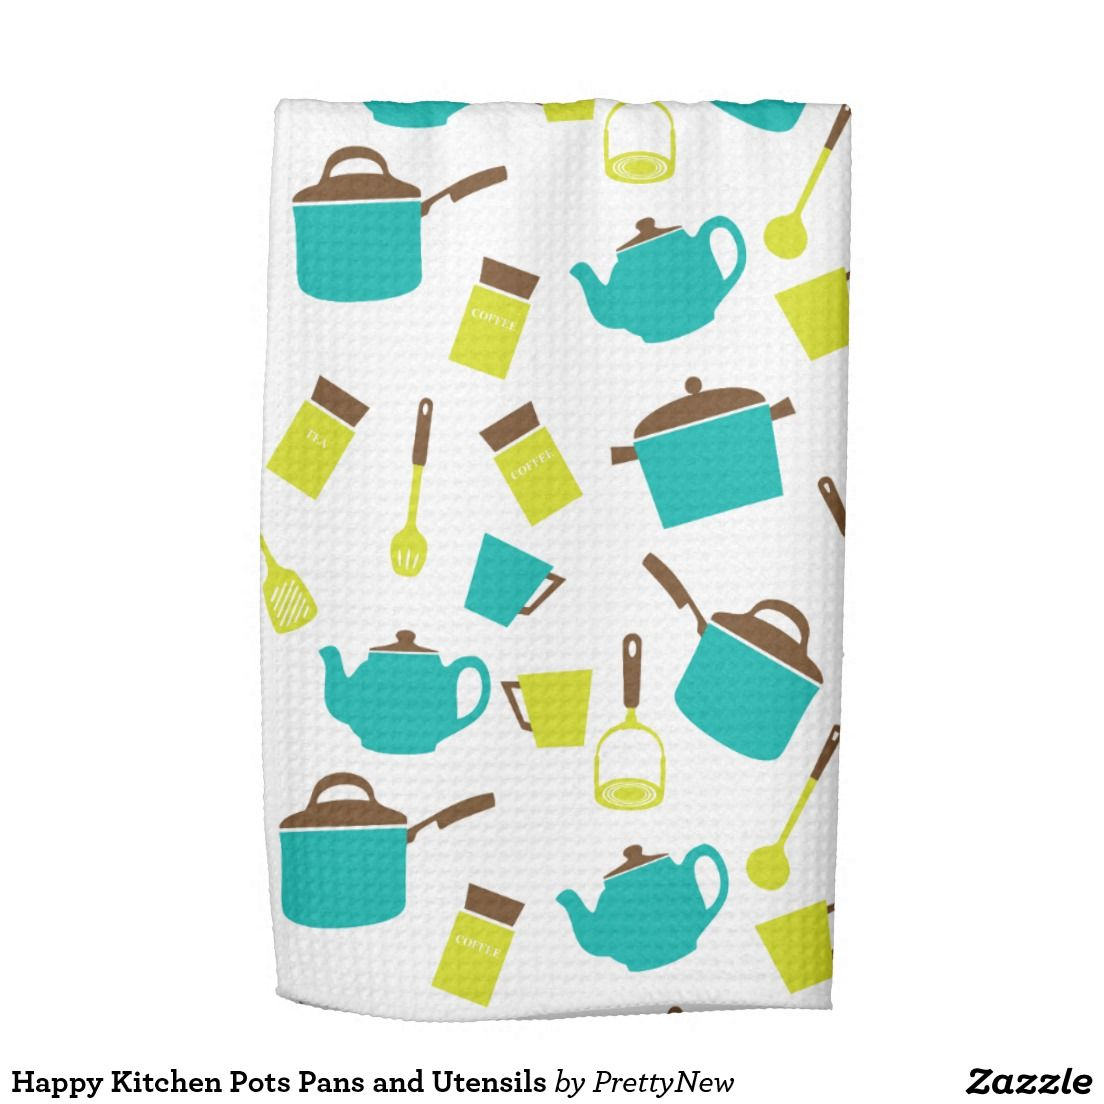 Happy Kitchen Pots Pans and Utensils Kitchen Towel - This is a fun ...